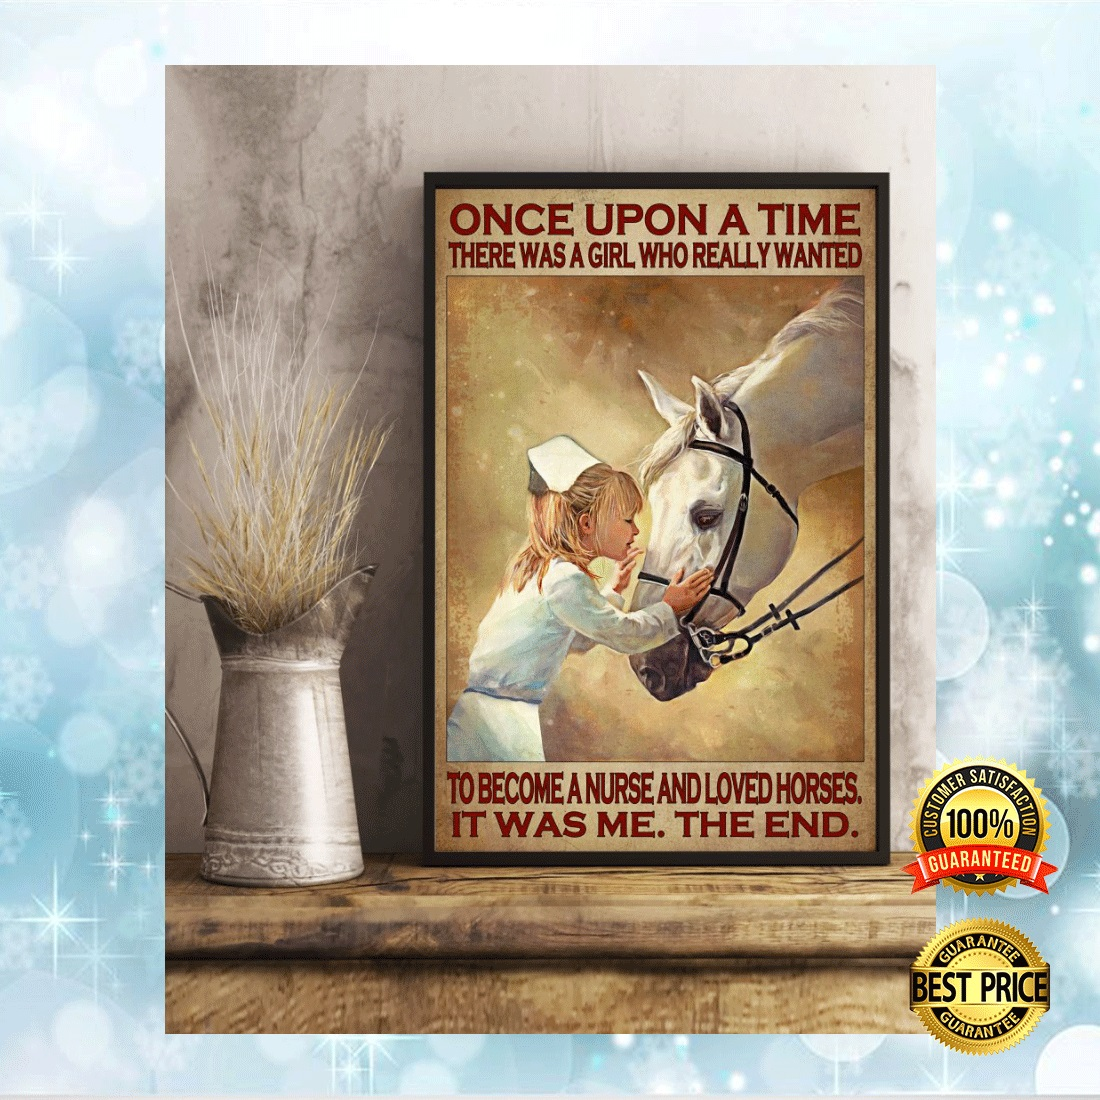 ONCE UPON A TIME THERE WAS A GIRL WHO REALLY WANTED TO BECOME A NURSE AND LOVED HORSES POSTER 4